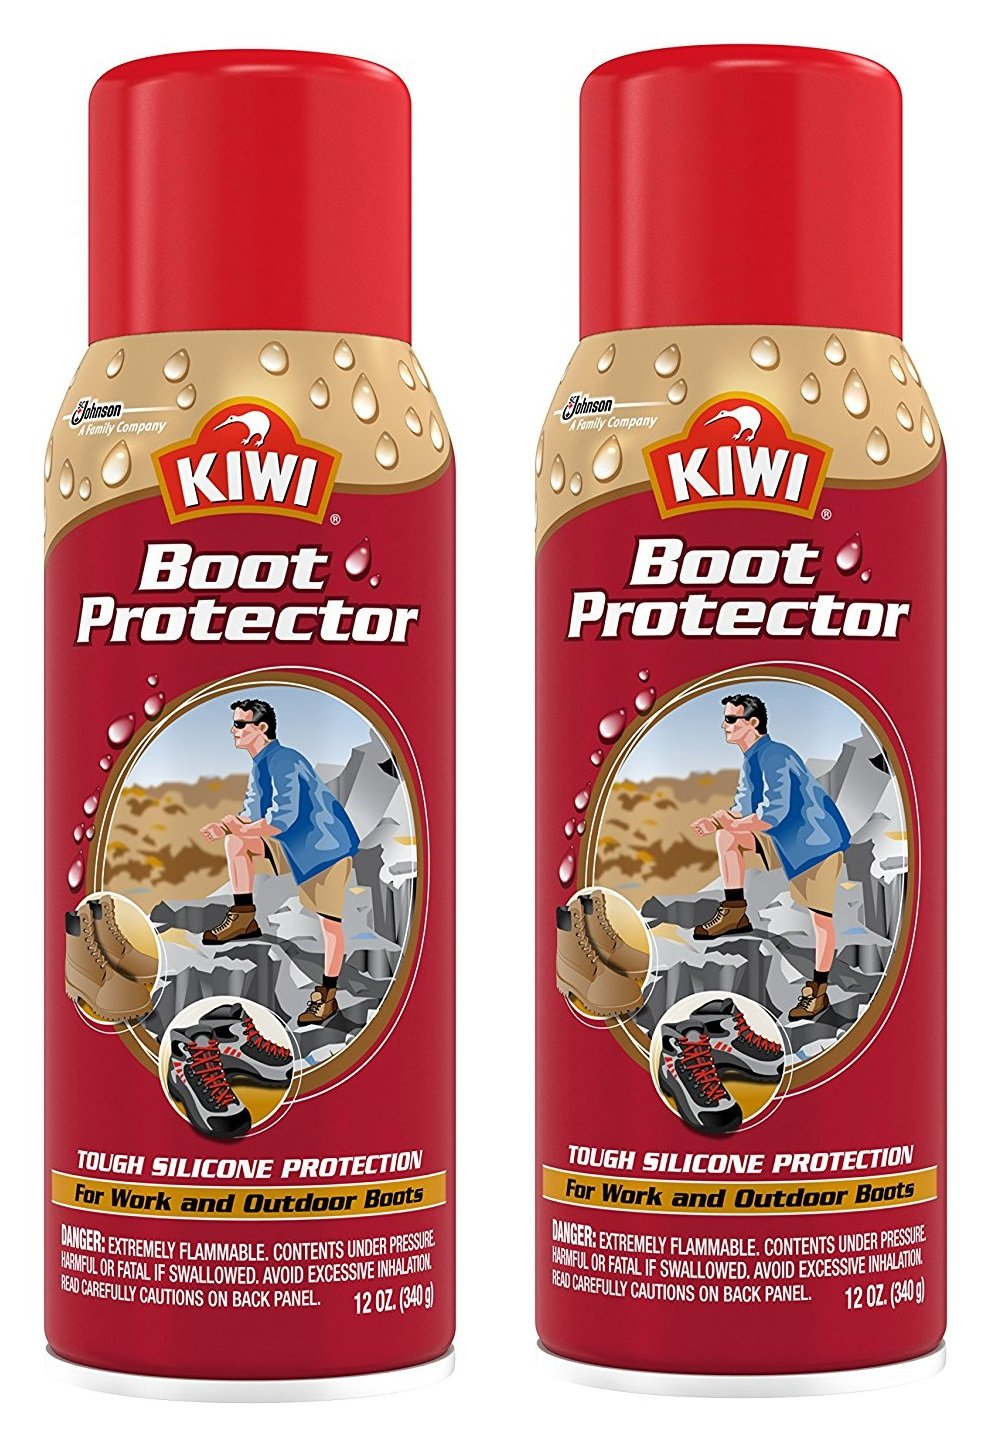 Kiwi Boot Protector, 12 Ounce by Kiwi (2-PACK)